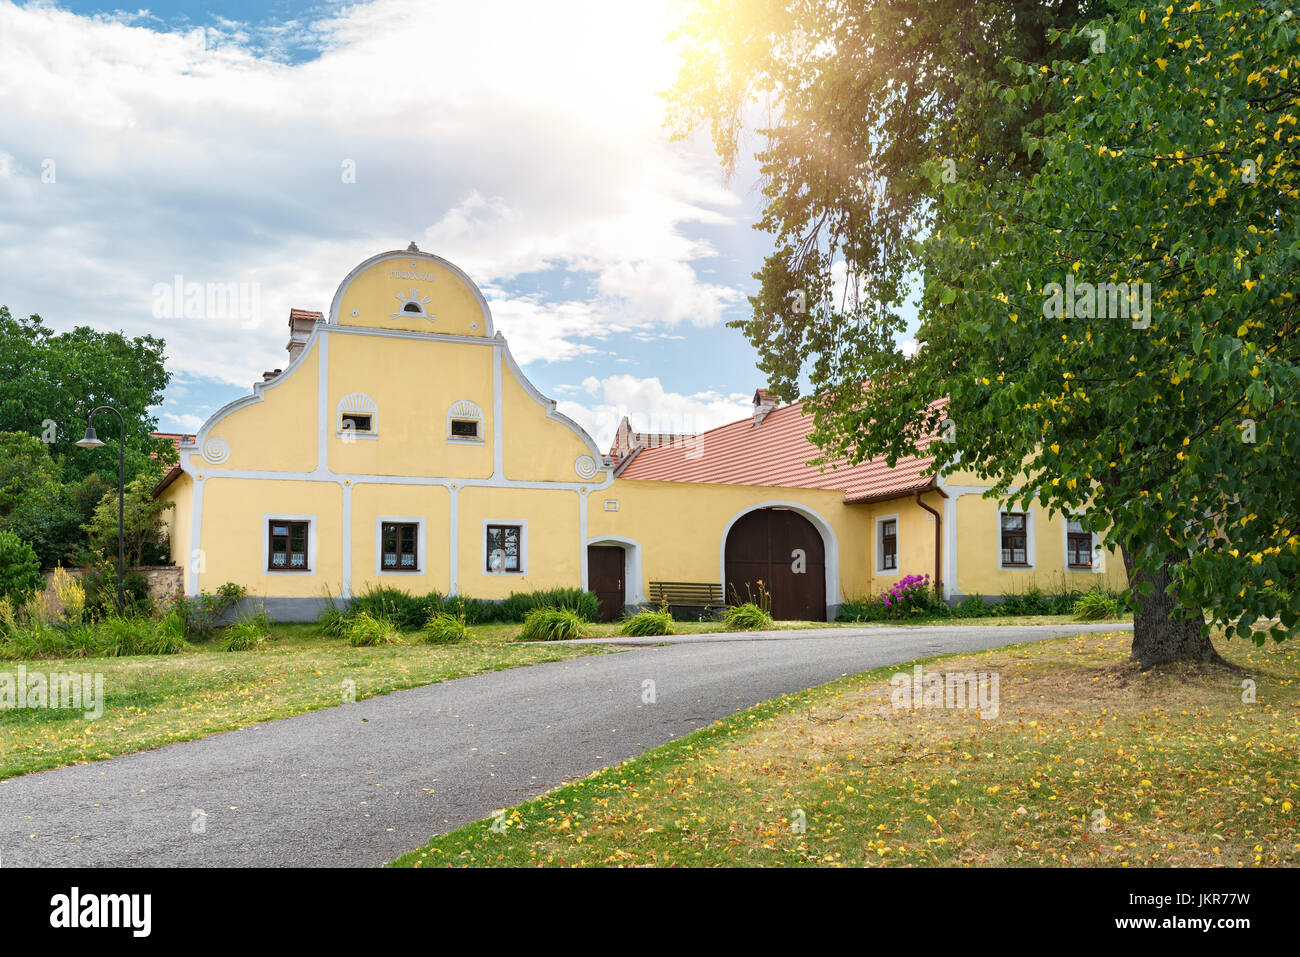 Rural decorated houses in Holasovice, Czech Republic. UNESCO World Heritage Site in South Bohemia - Stock Image